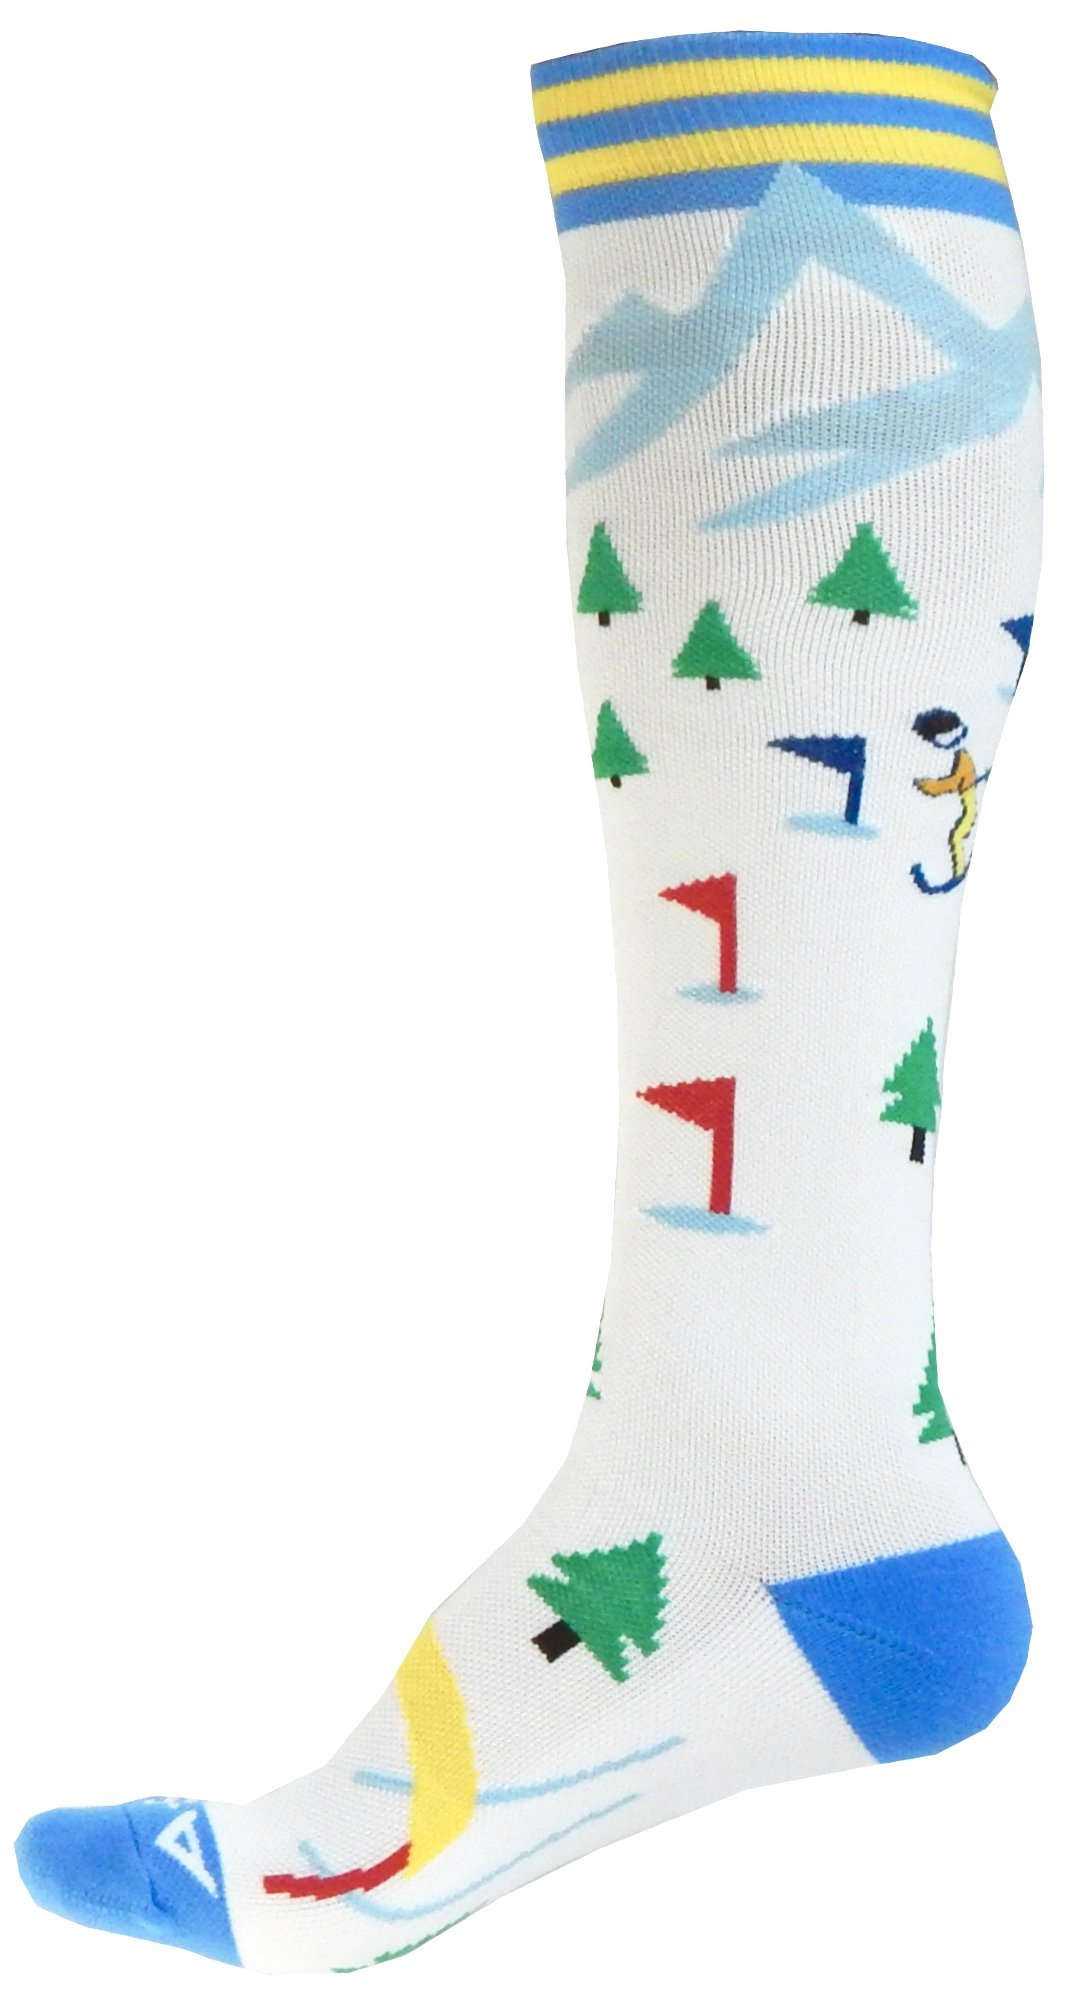 Compression Socks (1 pair) for Women & Men by A-Swift - Graduated Athletic Fit for Running, Nurses, Flight Travel, Skiing & Maternity Pregnancy - Boost Stamina & Recovery (Winter Holiday, L/XL)